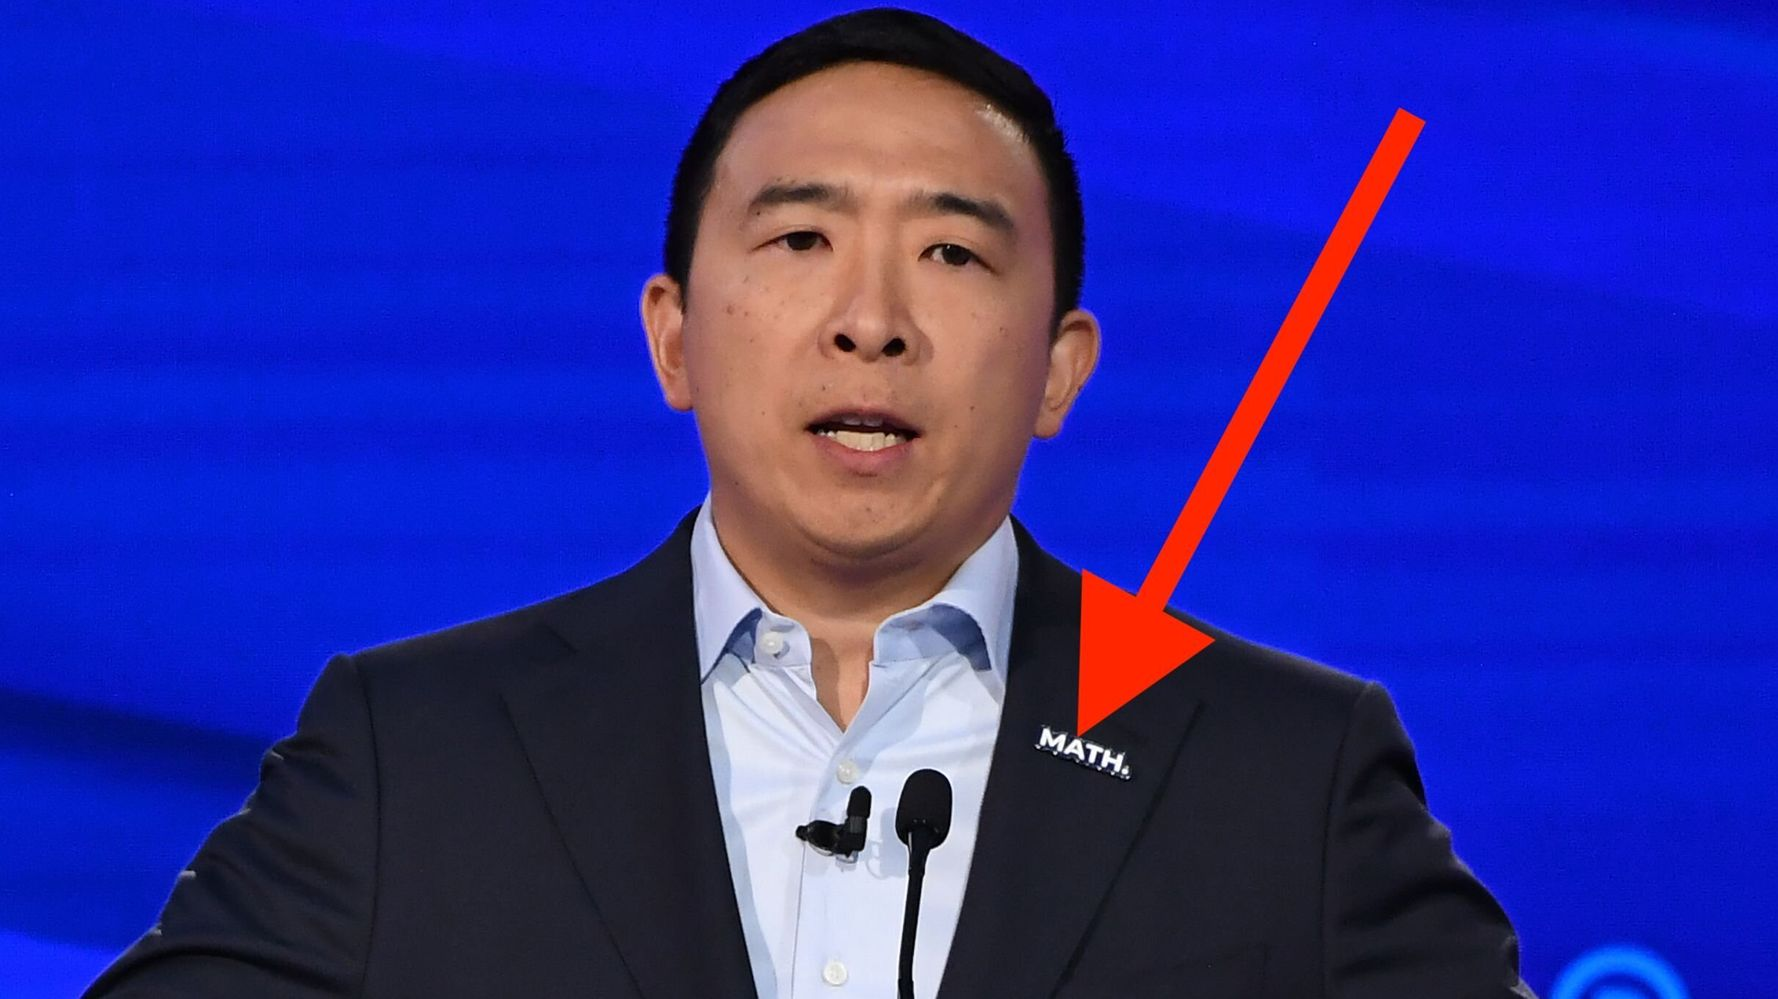 Surprise Star Of The Democratic Debate Was On Stage, But Never Said A Word